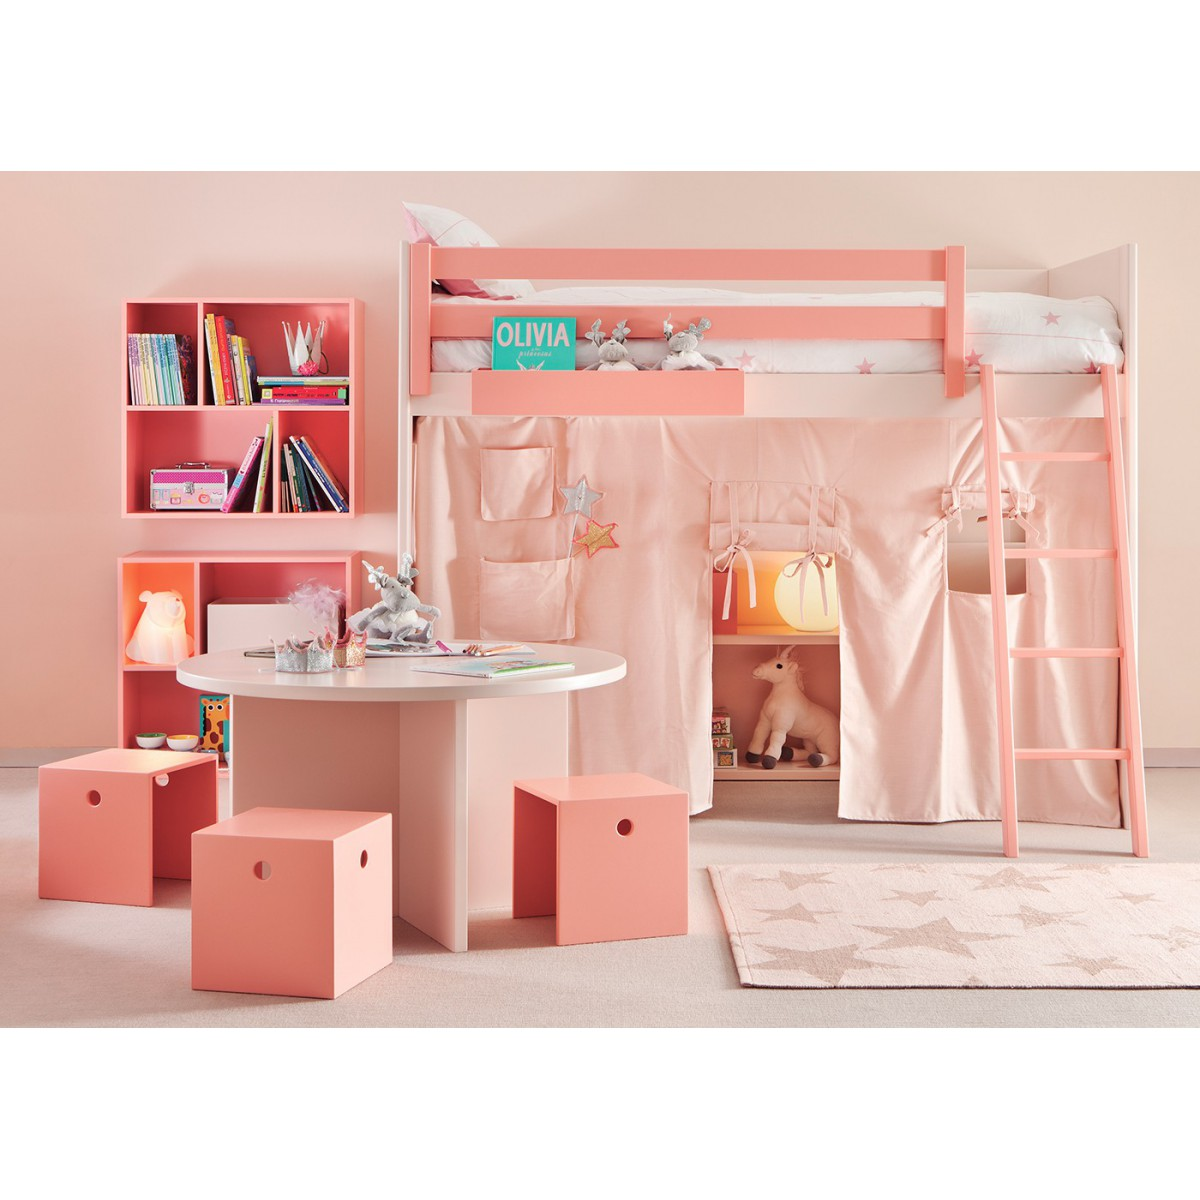 Lit Enfant Original Good Chambre Duenfants Originale Et Evolutive Avec Lit